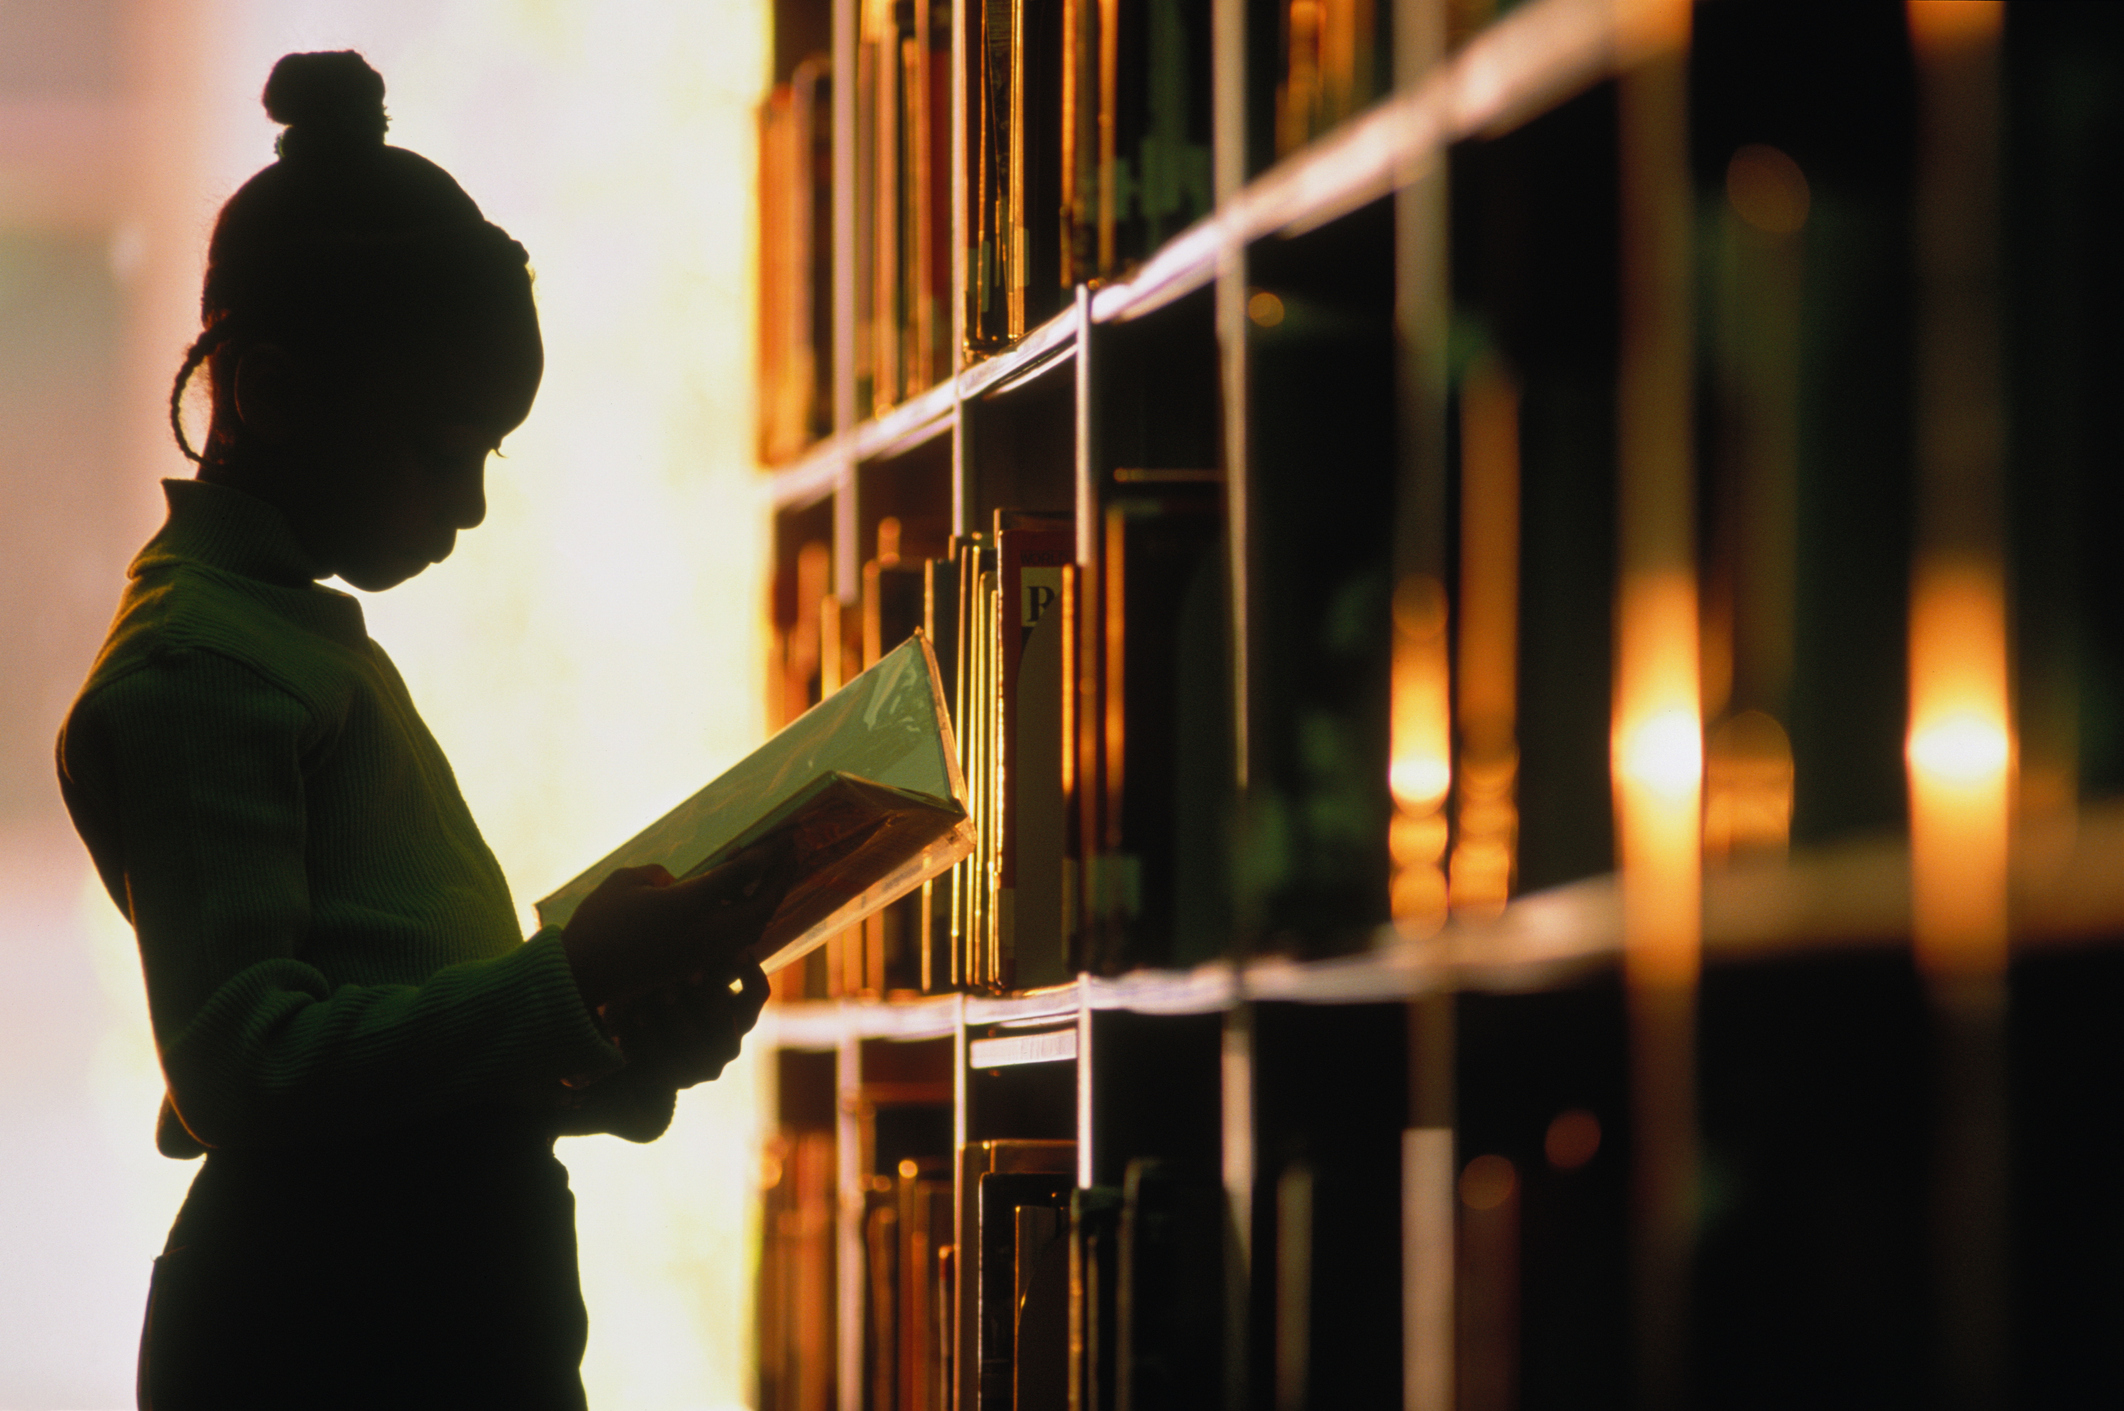 Girl looking at book in library, silhouette (Getty)